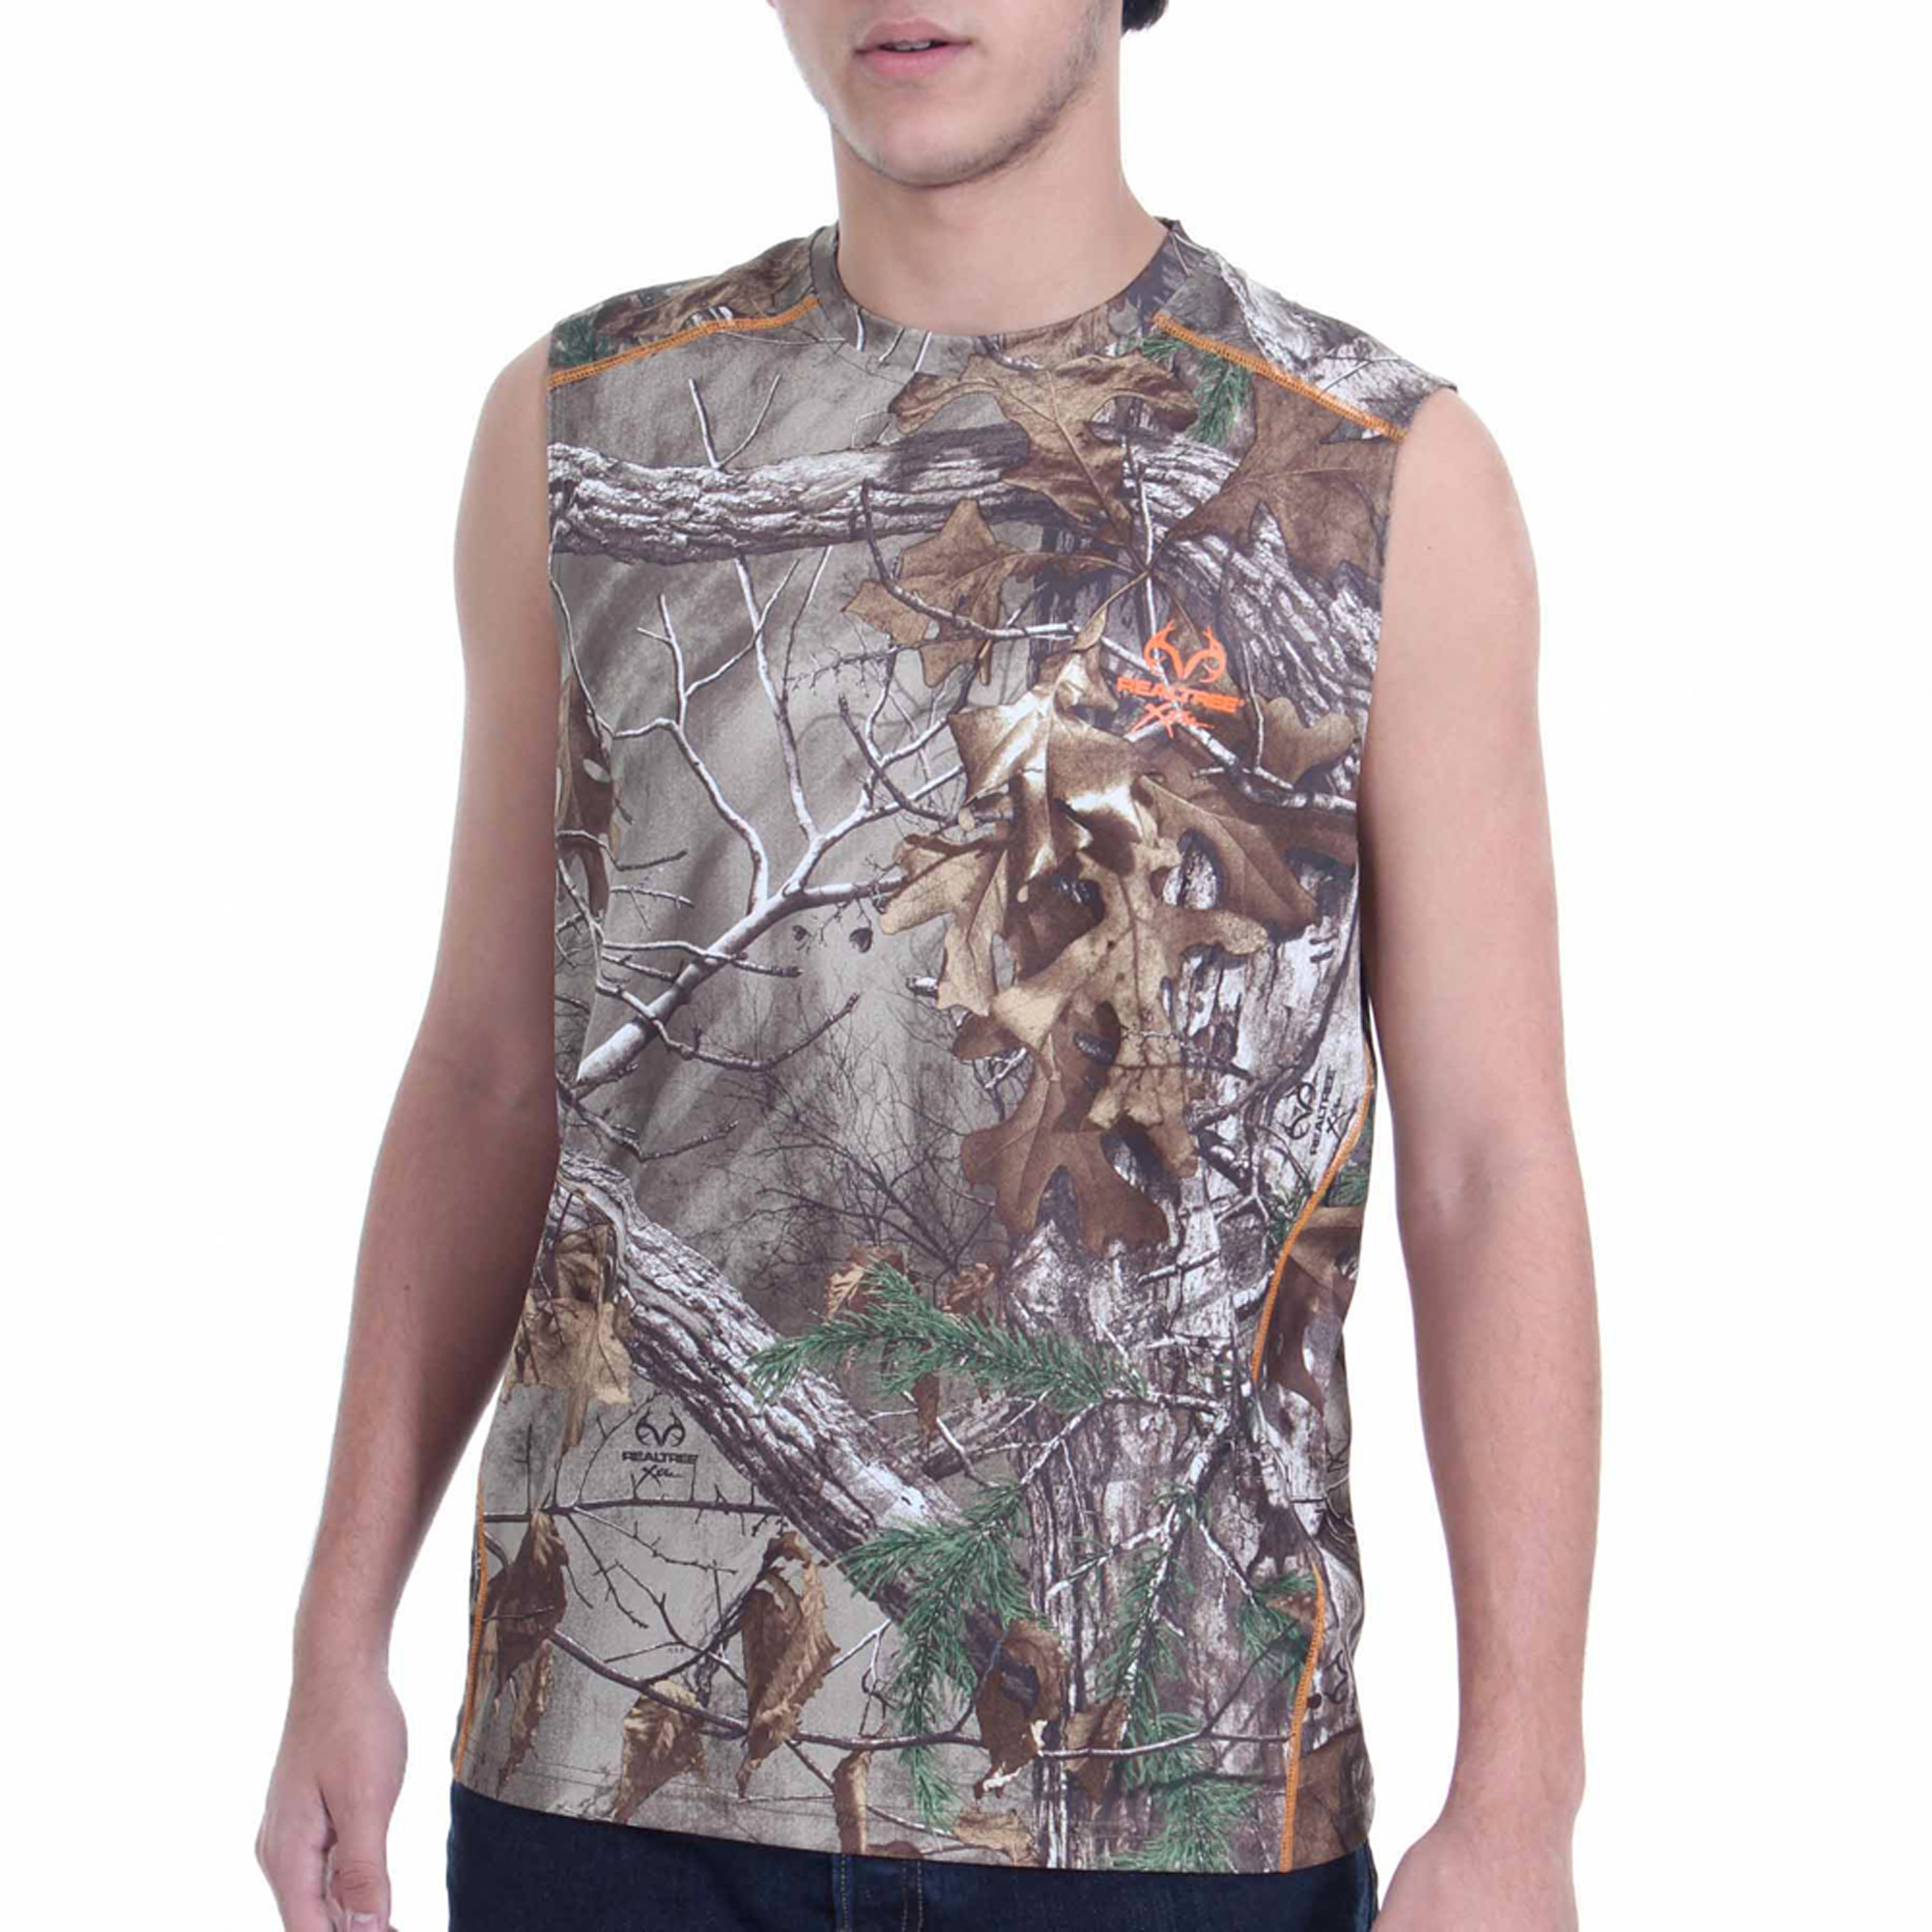 Realtree and Mossy Oak Men's Camo Performance Muscle Tee